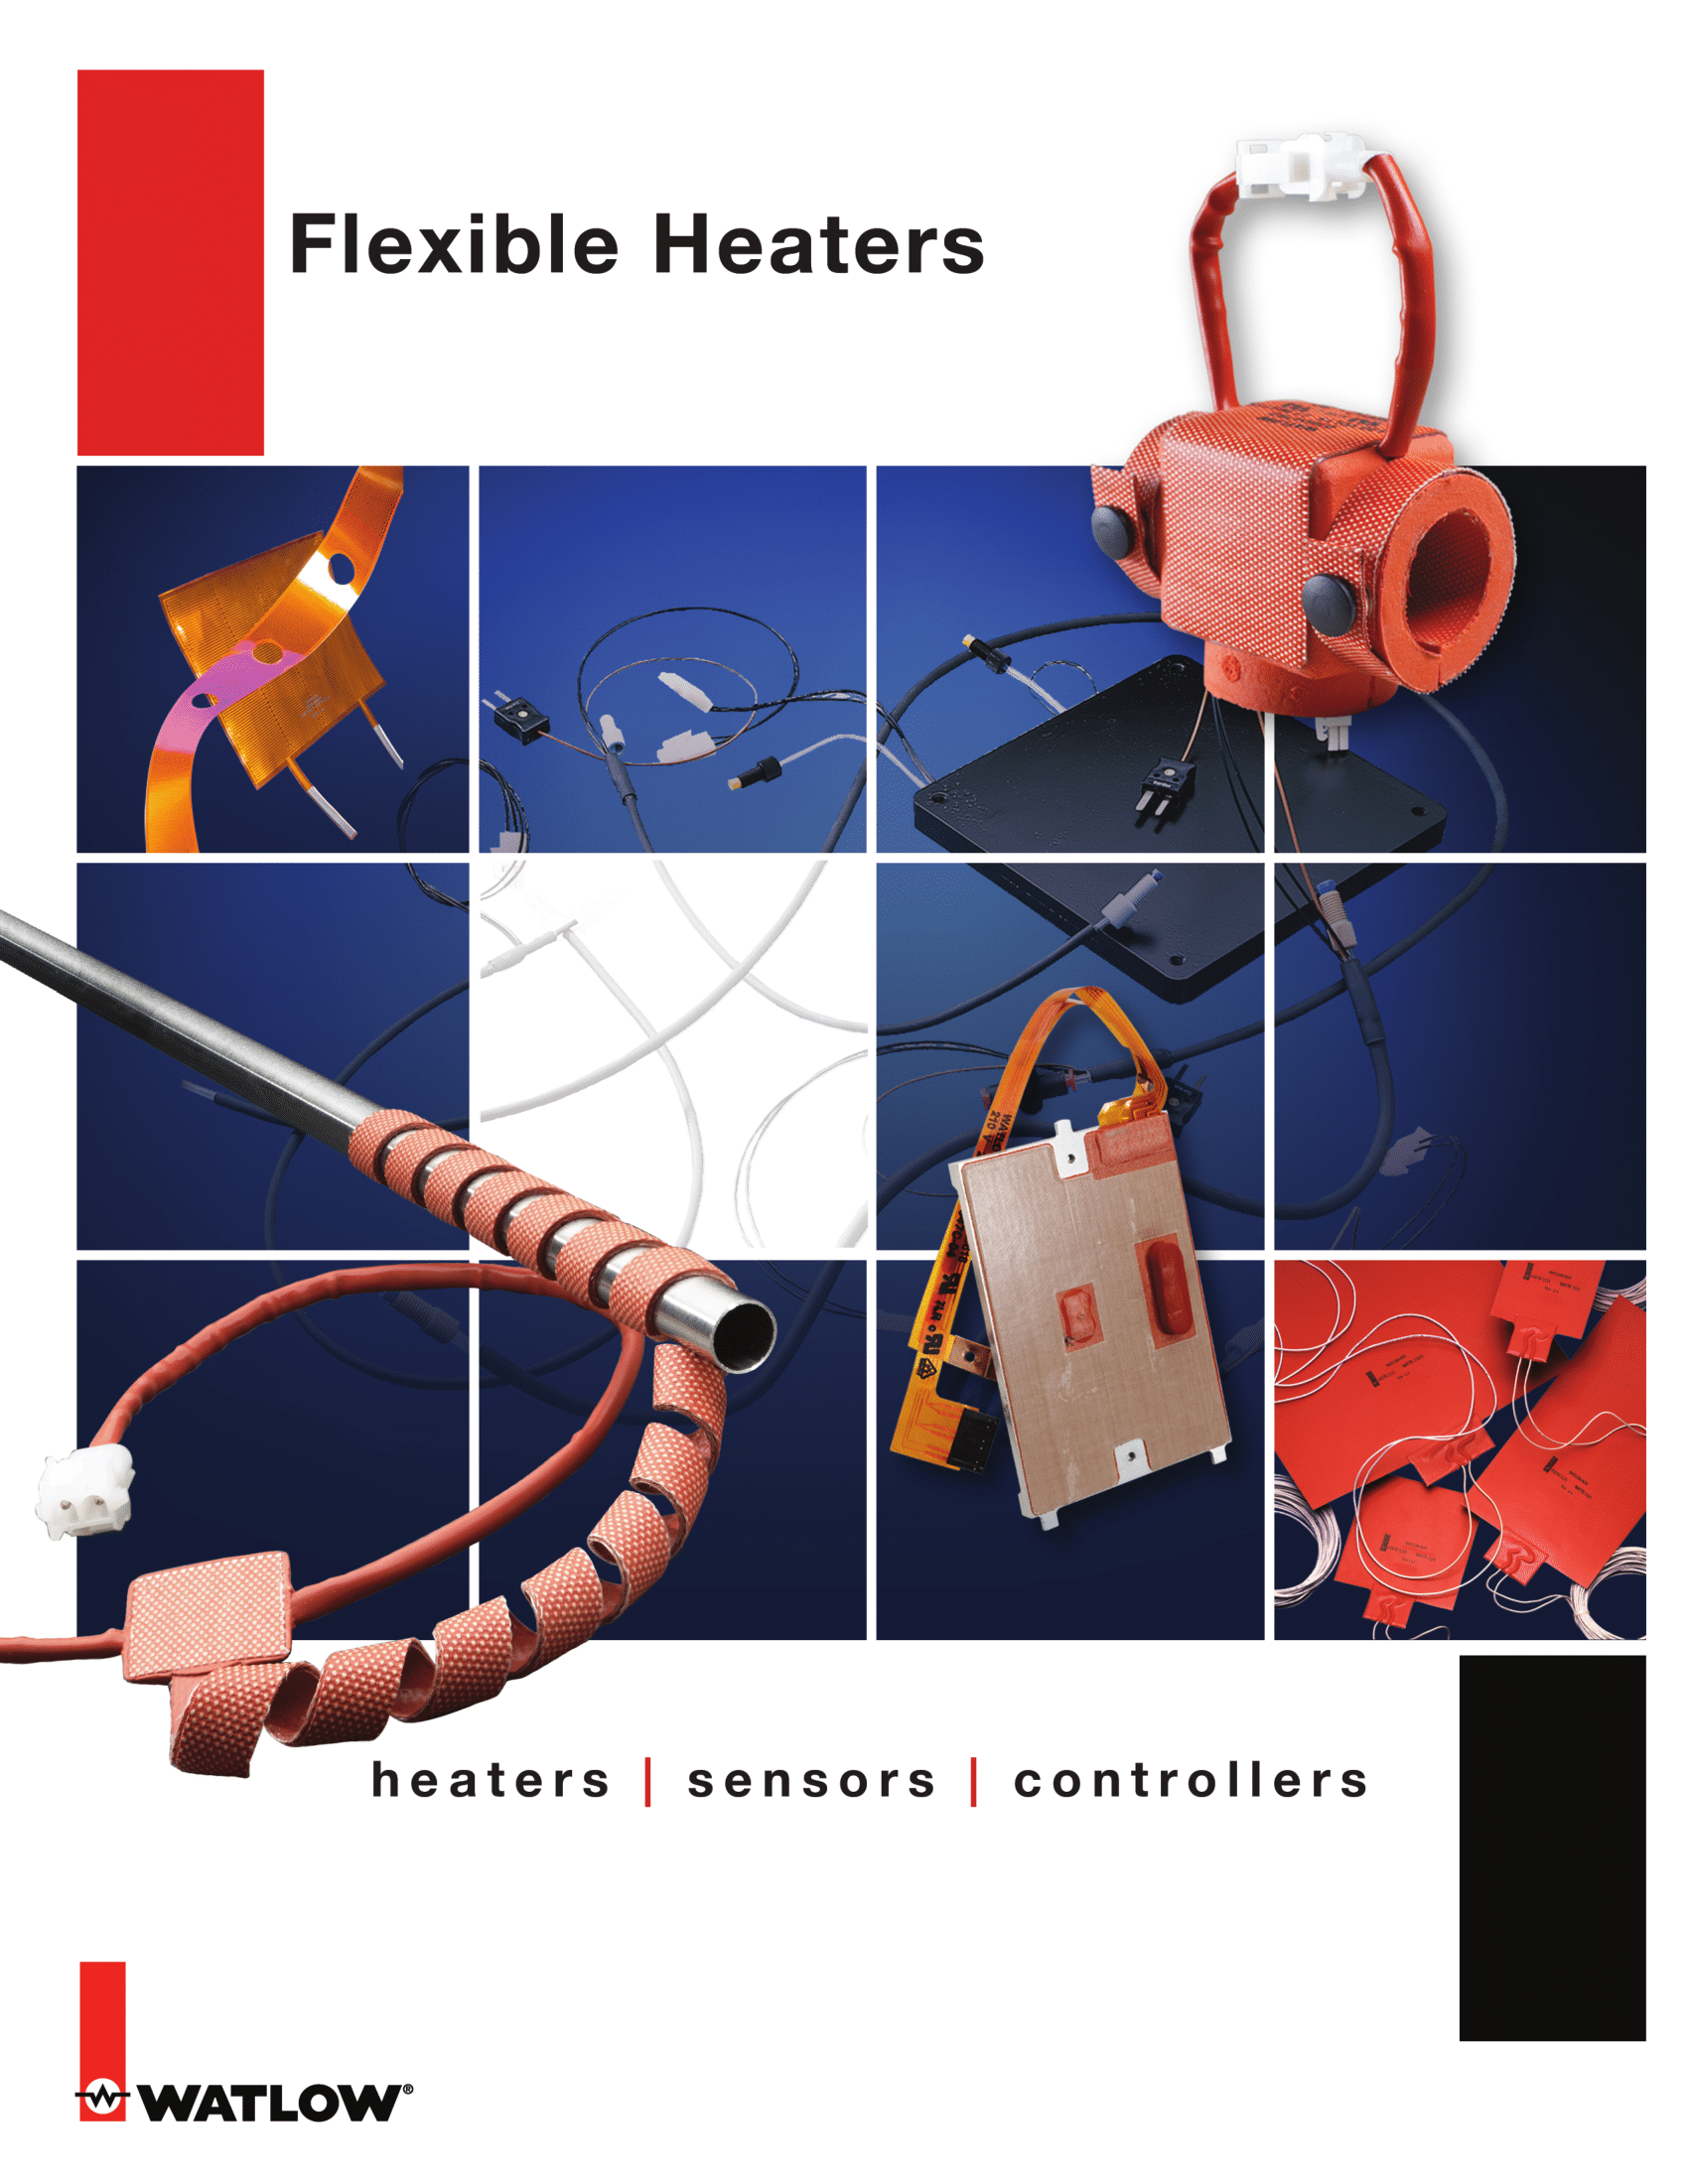 Flexible-Heaters-Brochure-01